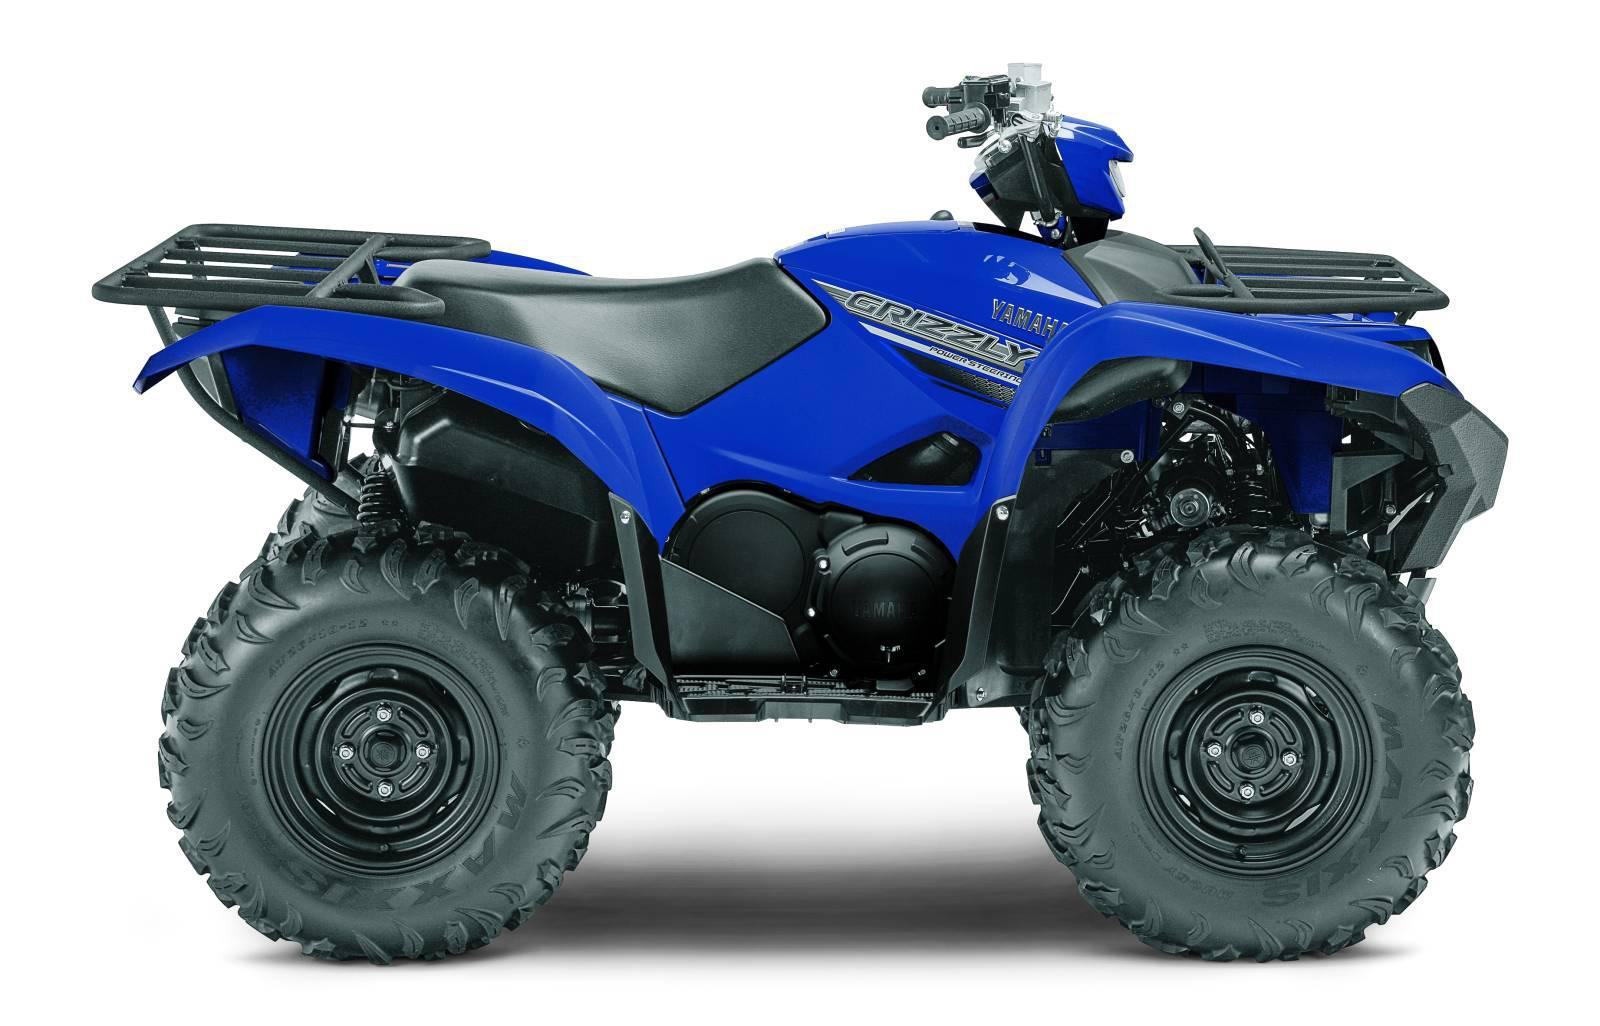 2016 Yamaha 225 photo - 2